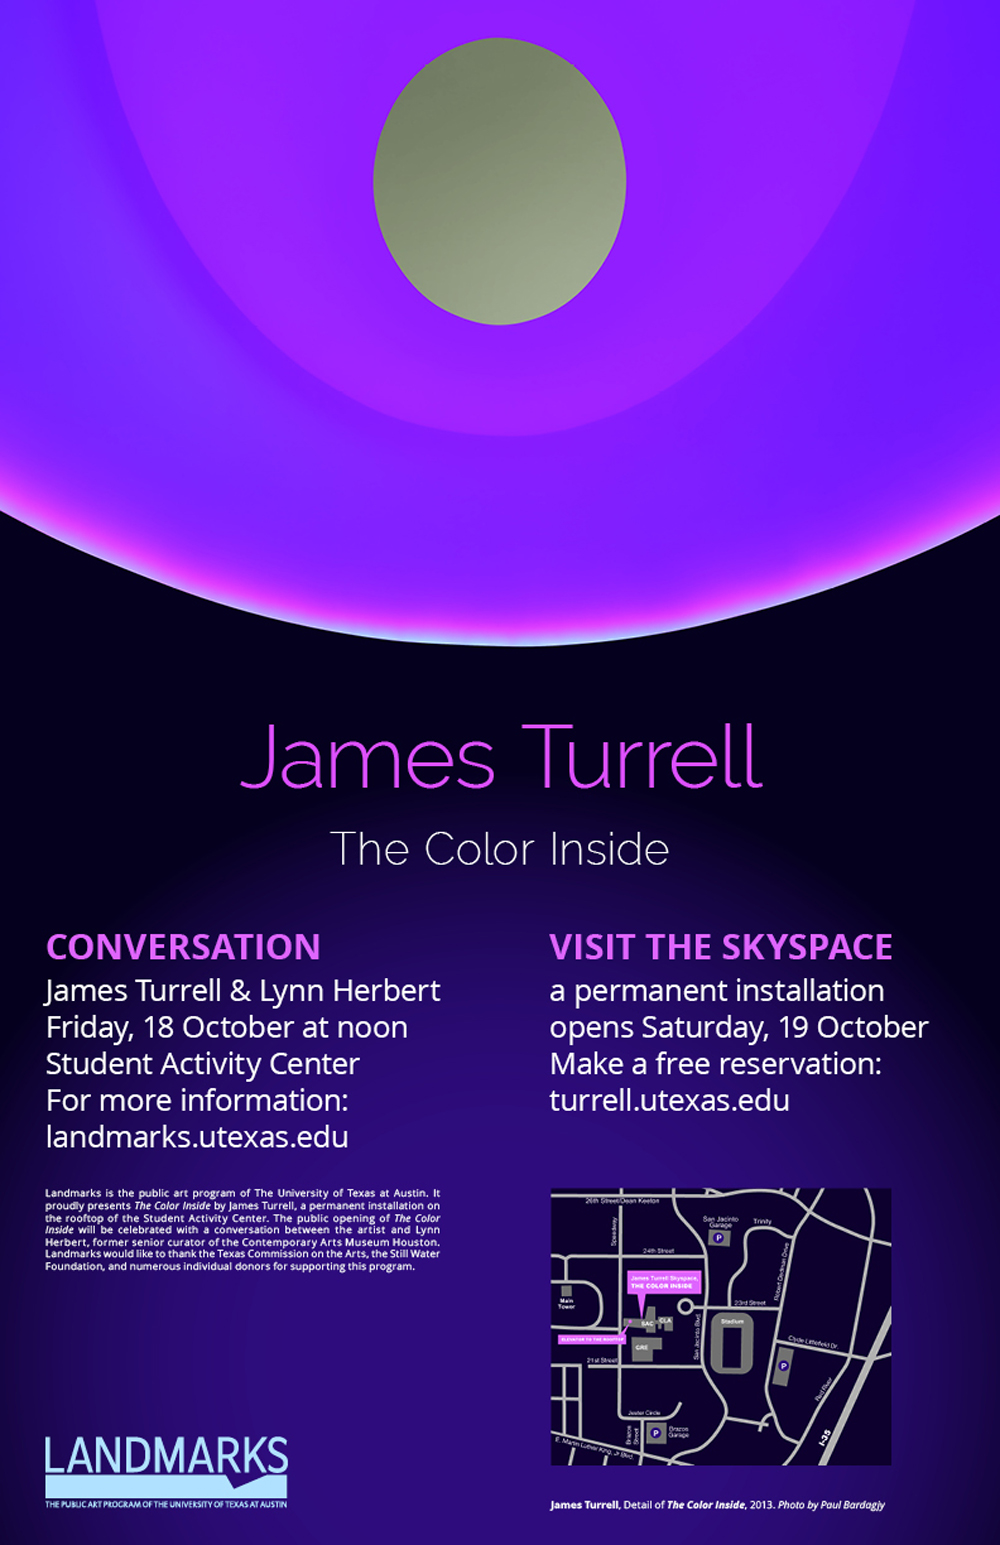 Landmarks Event, The Color Inside Conversation with James Turrell and Lynn Herbert, 2013